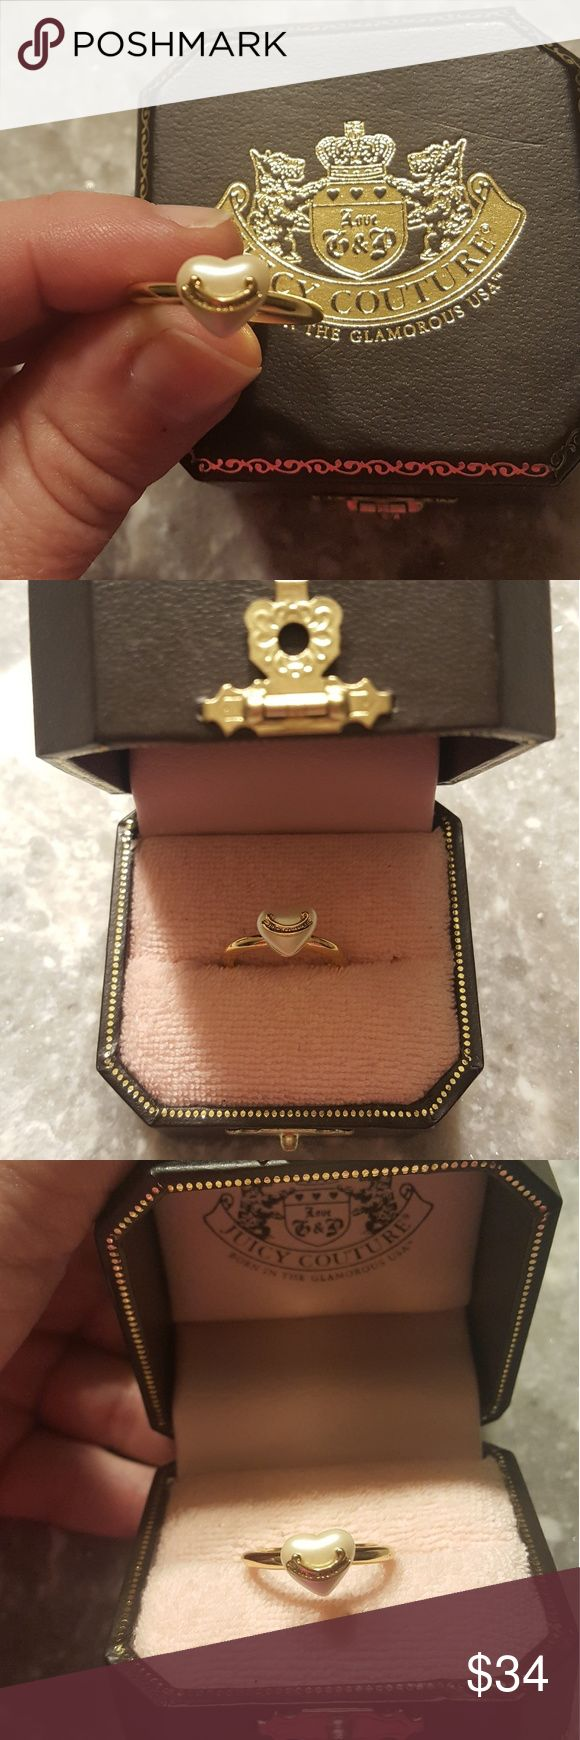 🆕️Juicy Couture puffed pearl ring Adorable Juicy ring, like new! Comes with pictured ring box Juicy Couture Jewelry Rings